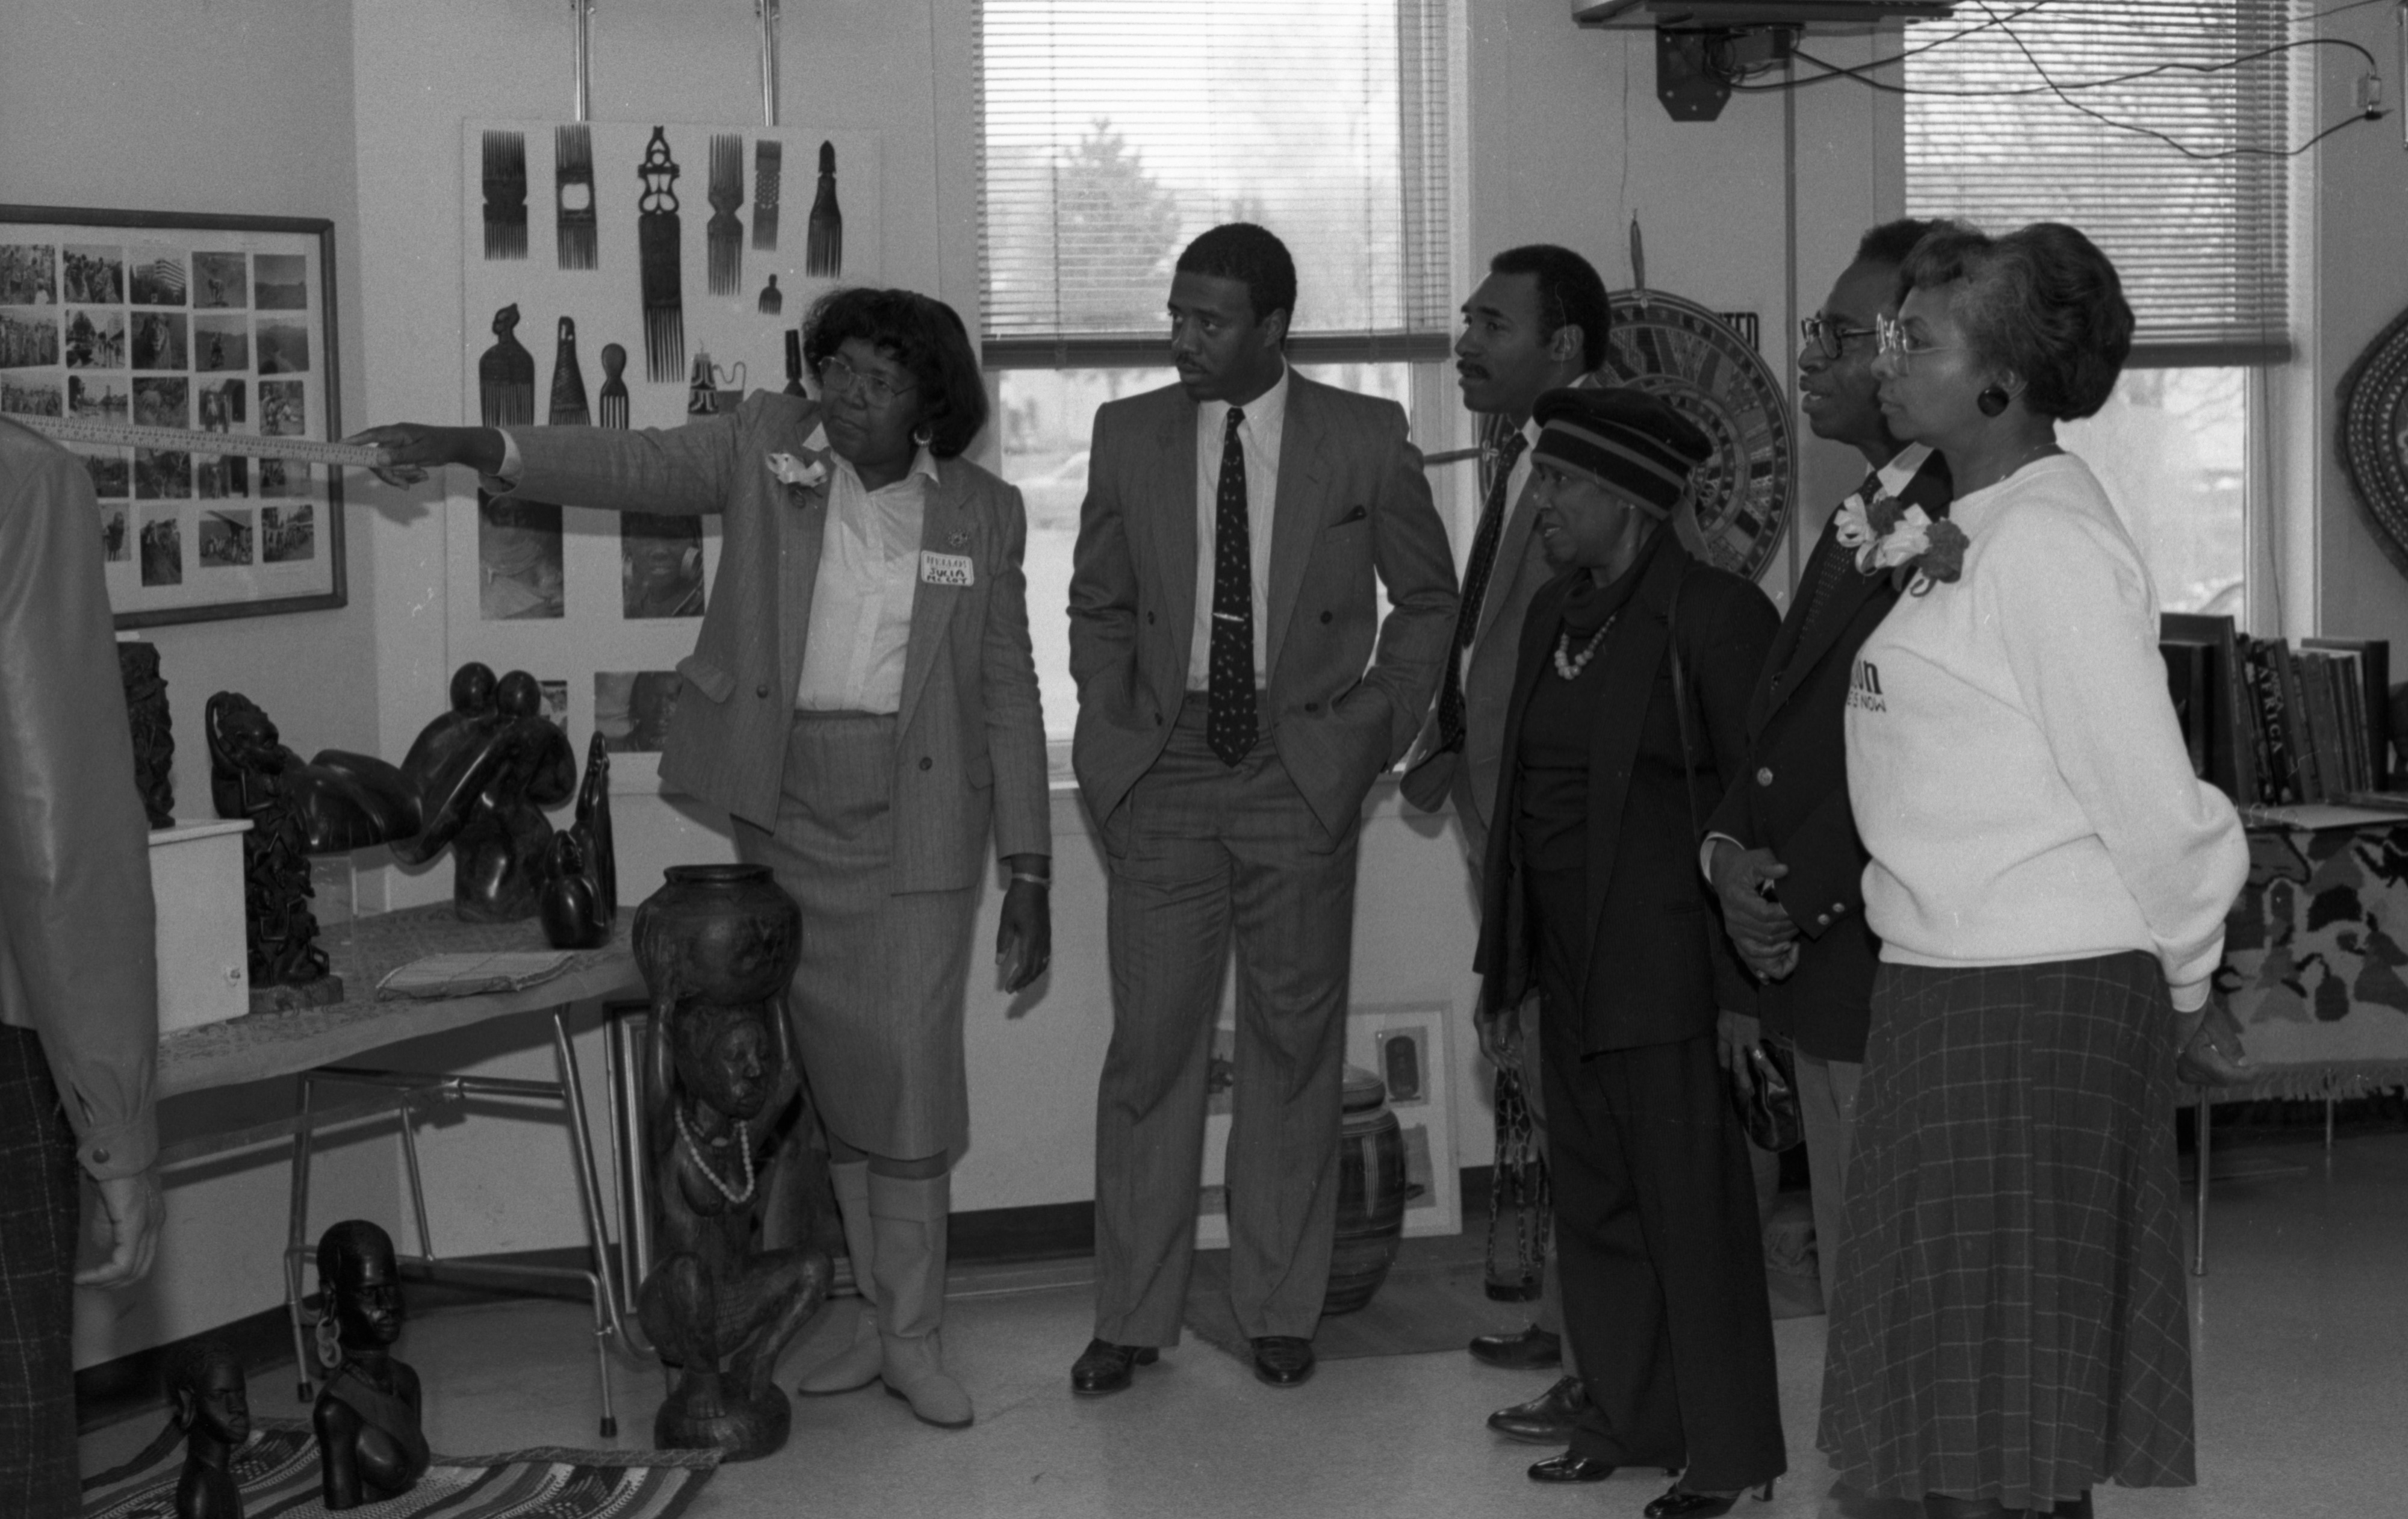 Group Viewing Display for Black History Fair at Parkridge Community Center, February 1988 image